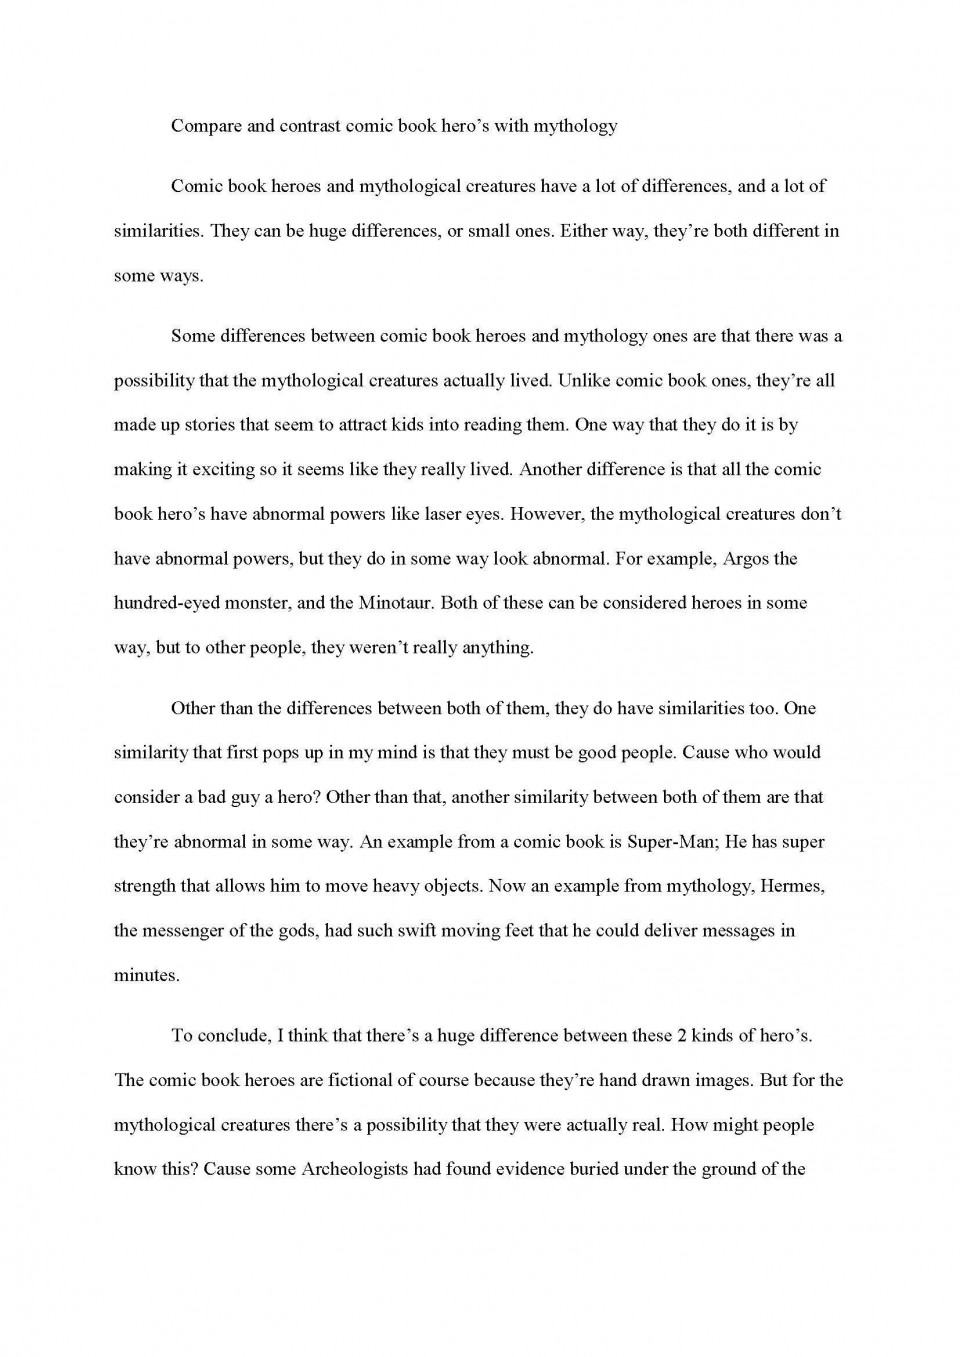 001 Exceptional Compare And Contrast Essay Example College Picture  For Topic Outline960